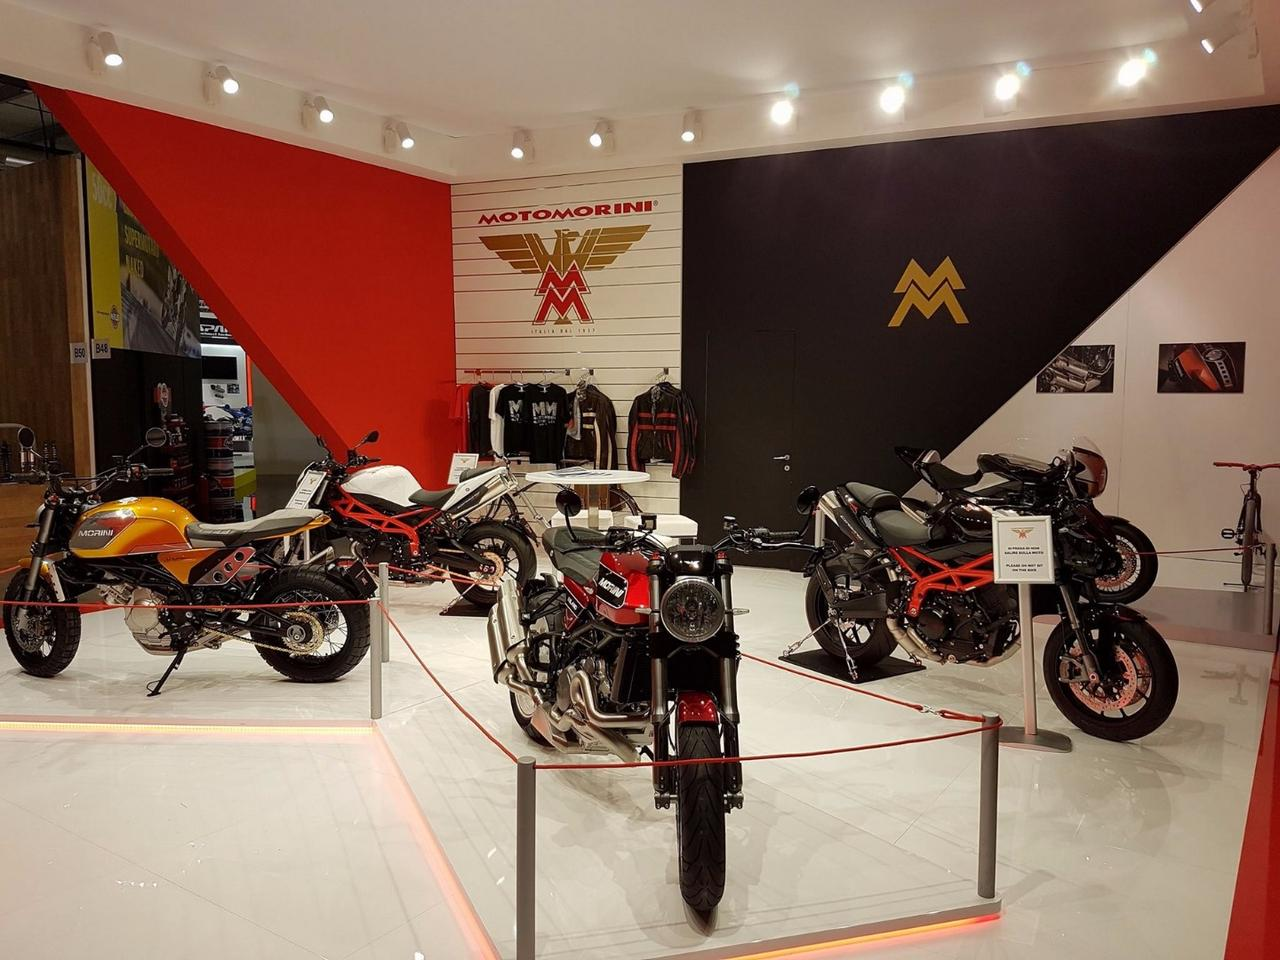 Moto Morini has escapedfrom financial difficultiesand returned with two new versions of its 1200 cc V-twin. The red Milano (center) and the yellow Scrambler (left) feature mainly cosmetic changes